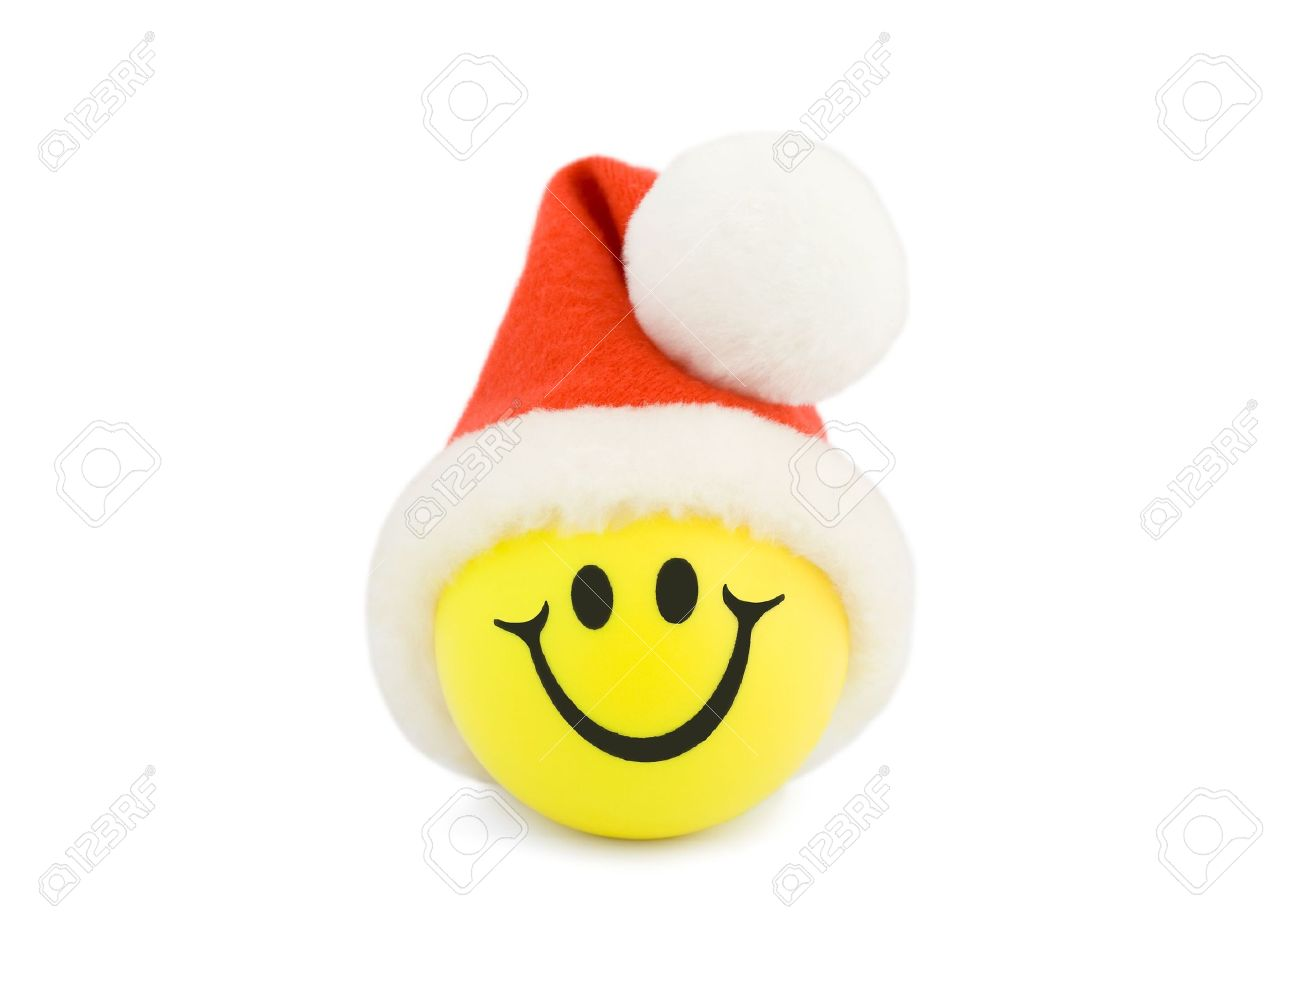 Tennis christmas ornaments - Christmas Smiling Tennis Ball In Christmas Hat Stock Photo 4597596